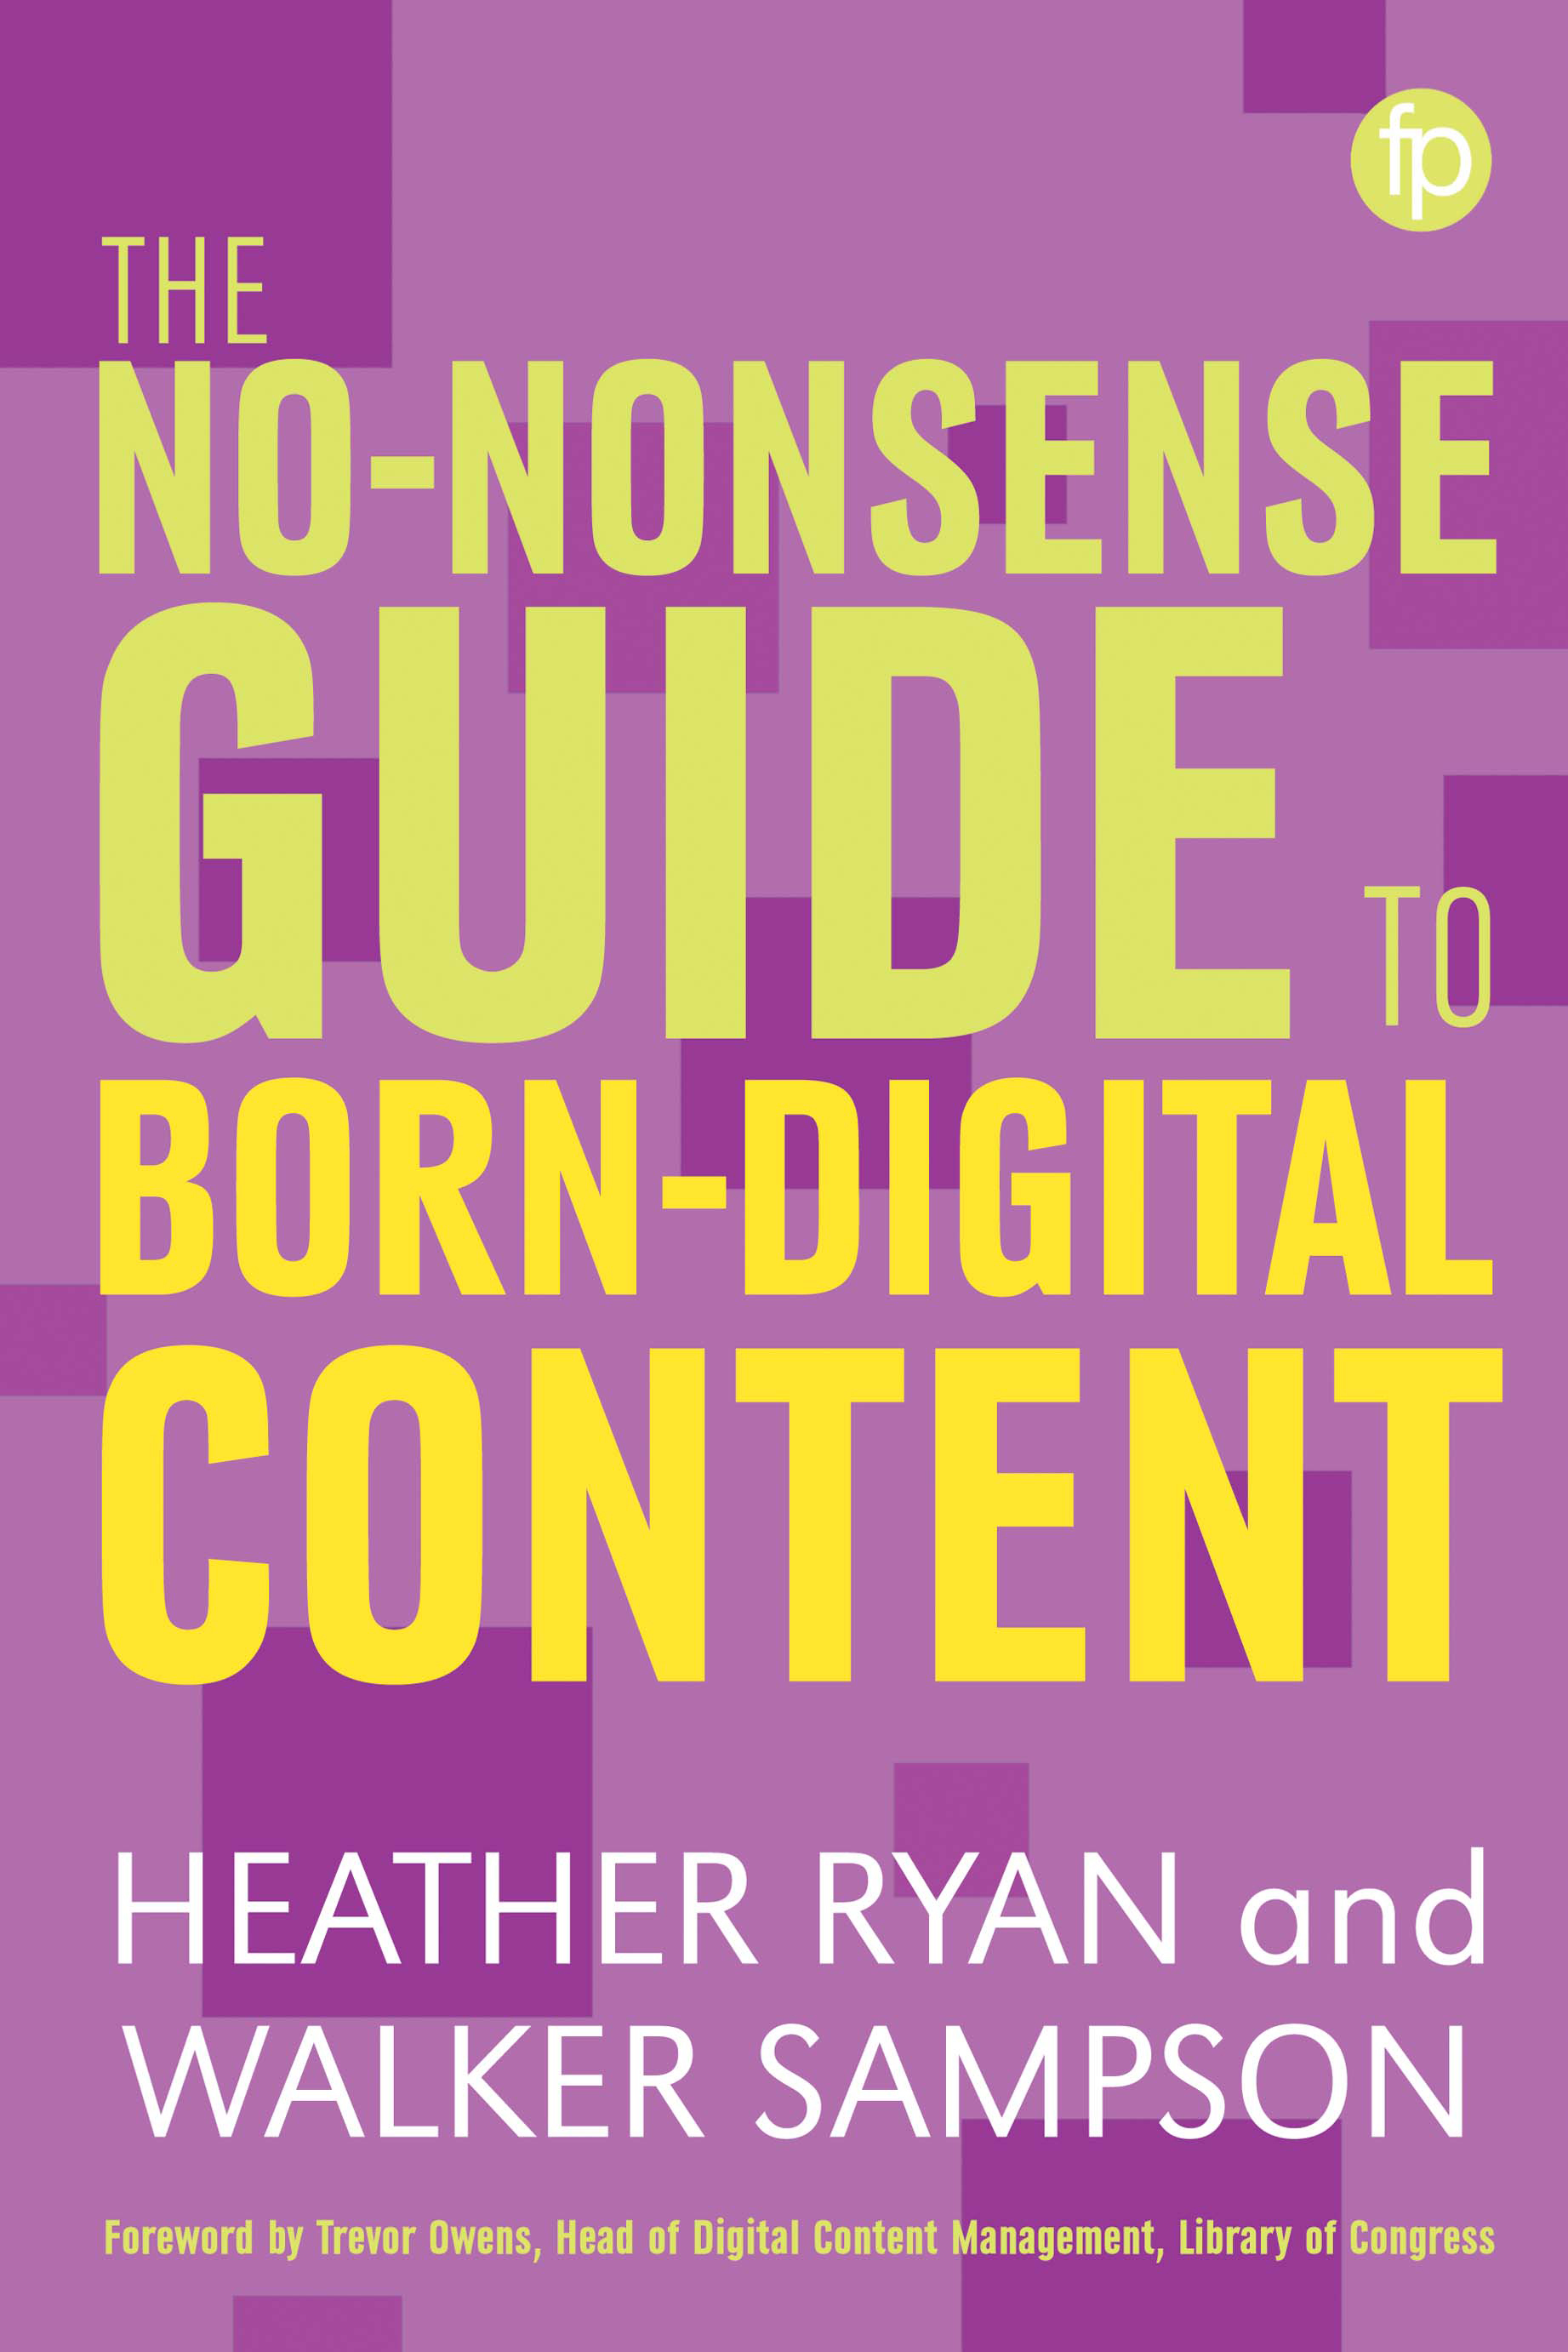 The No-Nonsense Guide to Born-Digital Content